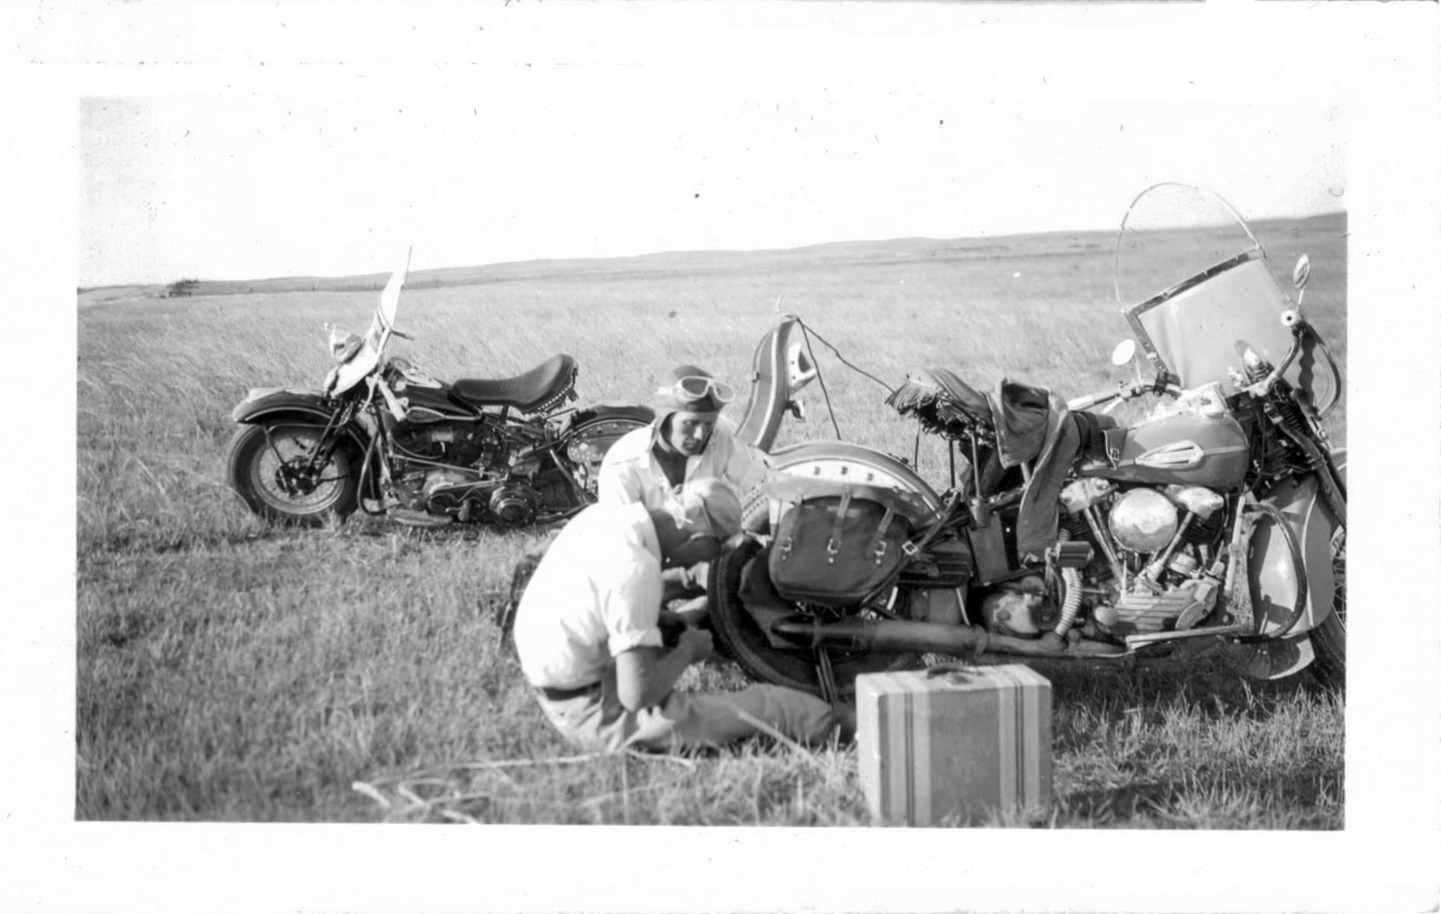 1st day out 1st flat on Ernies machine in sand hills of Nebraska